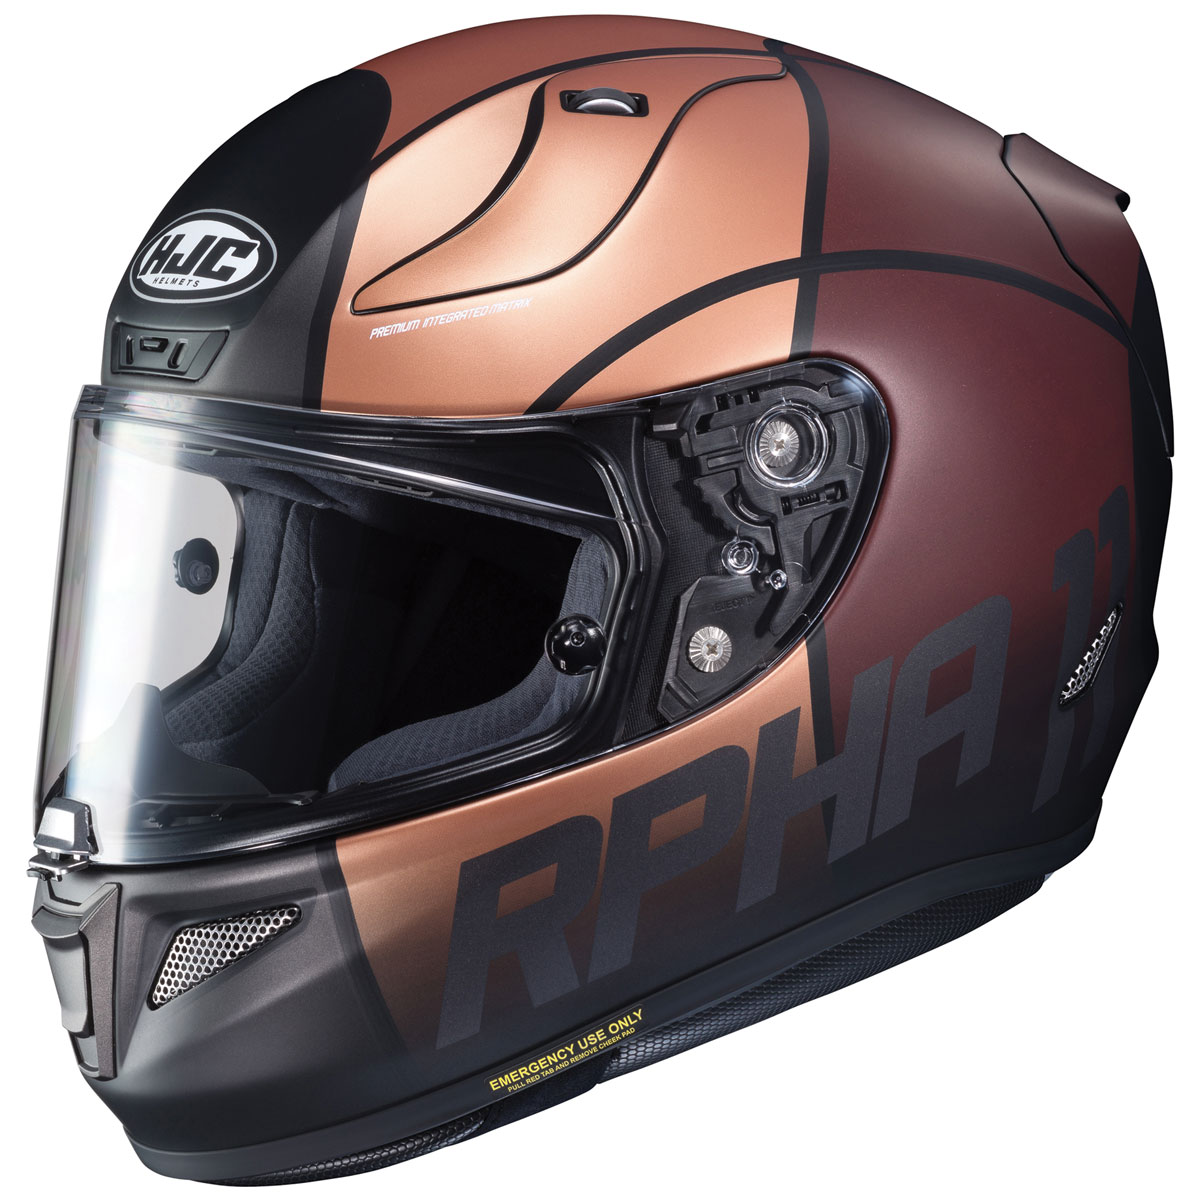 a61c9144 HJC RPHA 11 Pro Quintain Black/Bronze/Brown Full Face Helmet